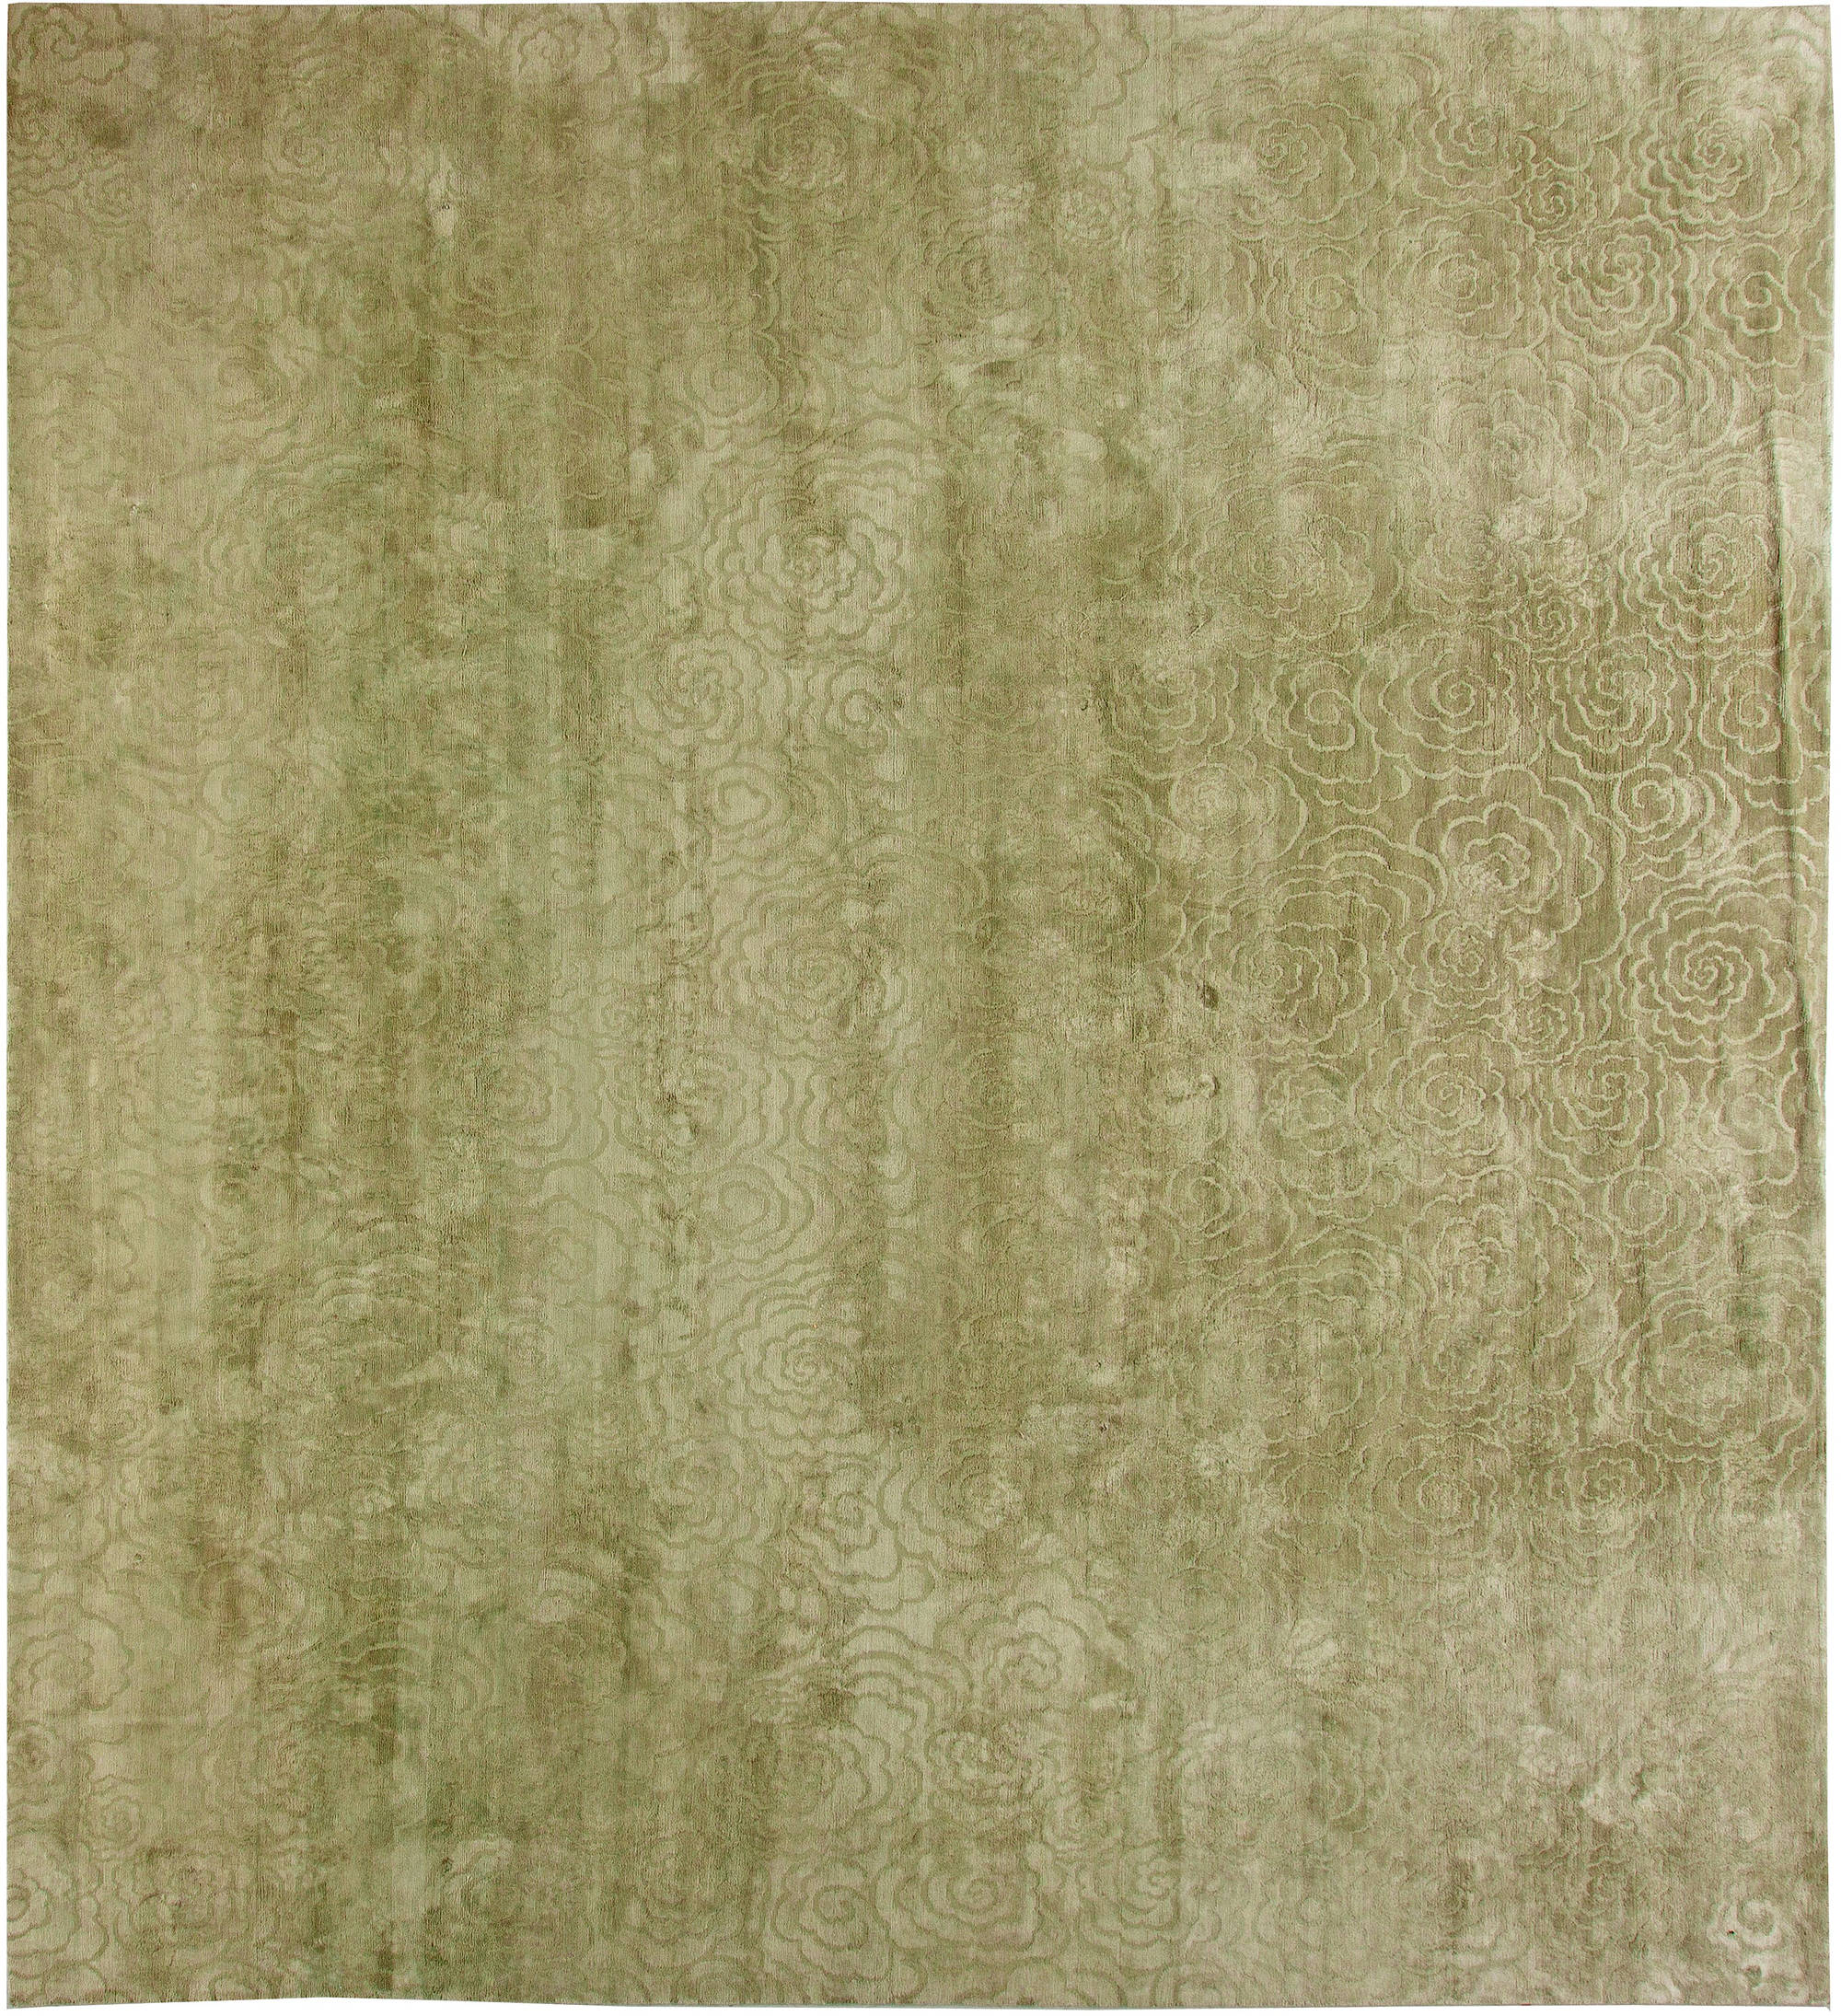 Solid Color Area Rugs Amp Carpets For Sale Solid Colored